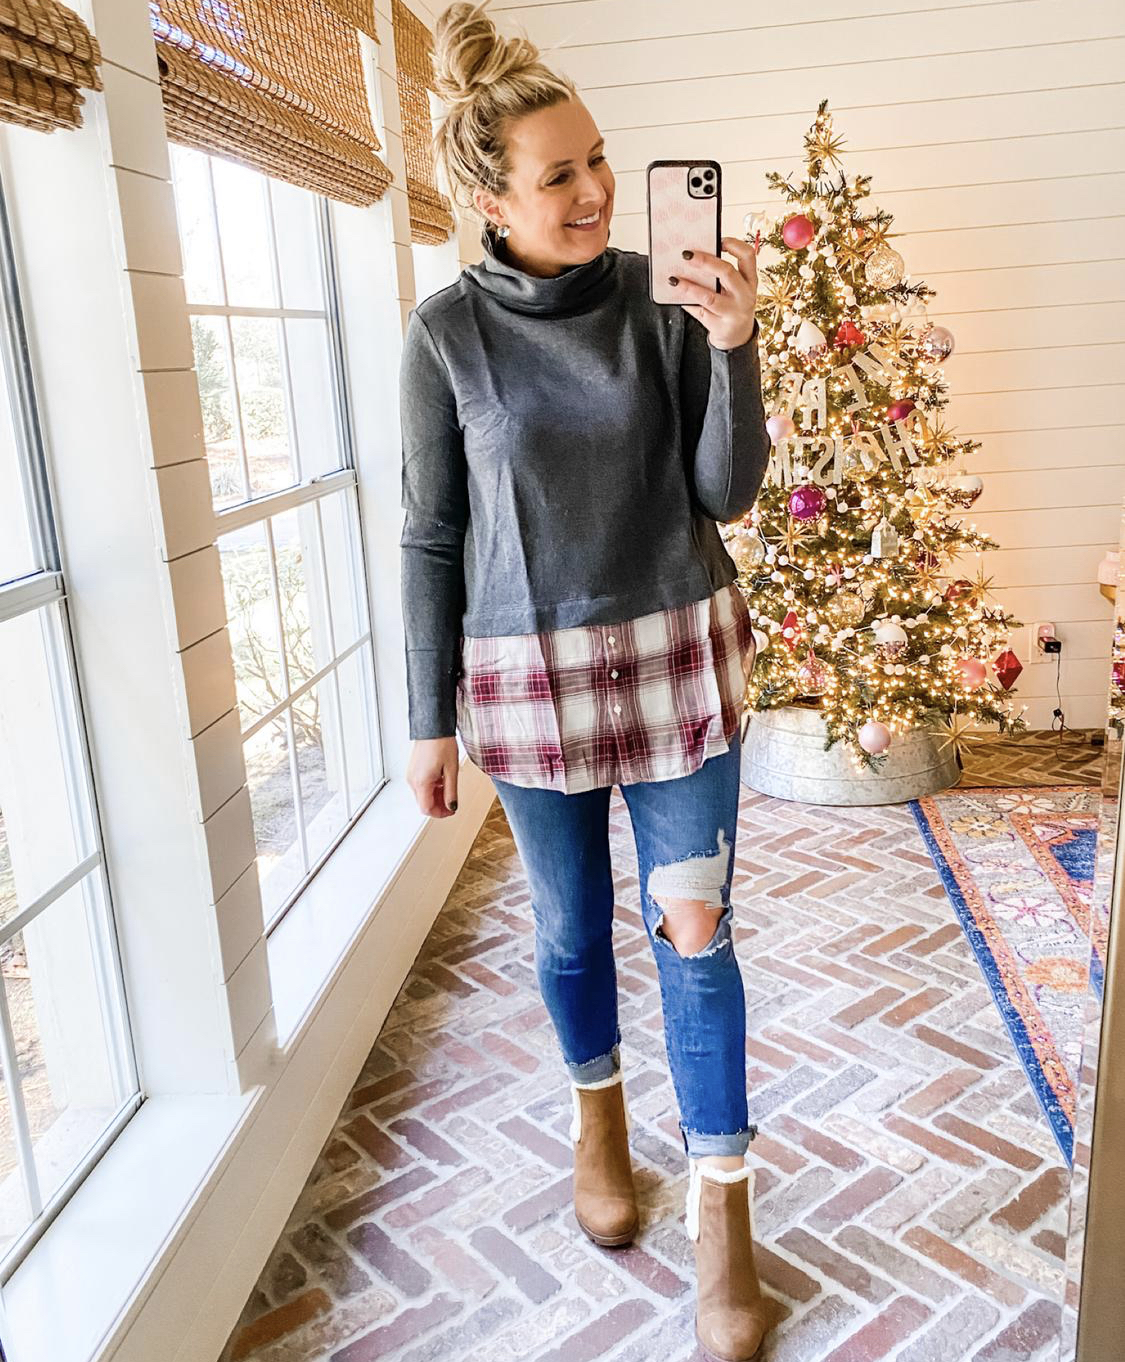 December Outfits by popular Houston fashion blog, Fancy Ashley: image of a woman standing in front of a Christmas tree decorated with pink, white and silver ornaments and wearing a grey and red and white plaid turtleneck shirt, distressed denim, and fur lined brown sueded ankle boots.